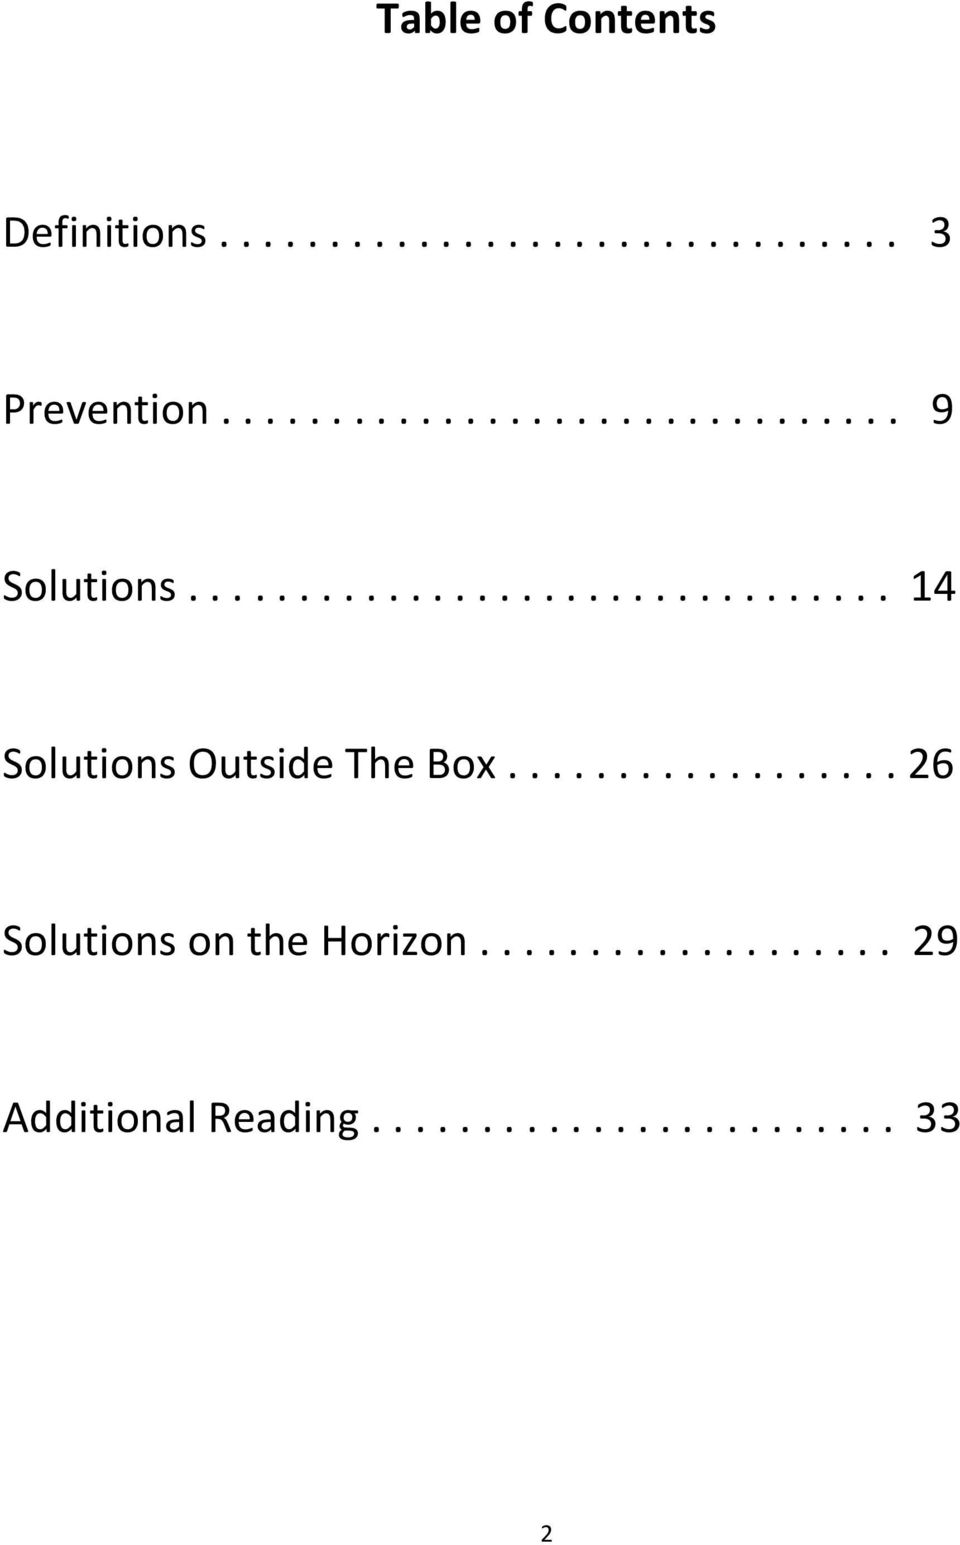 ................. 26 Solutions on the Horizon................... 29 Additional Reading.